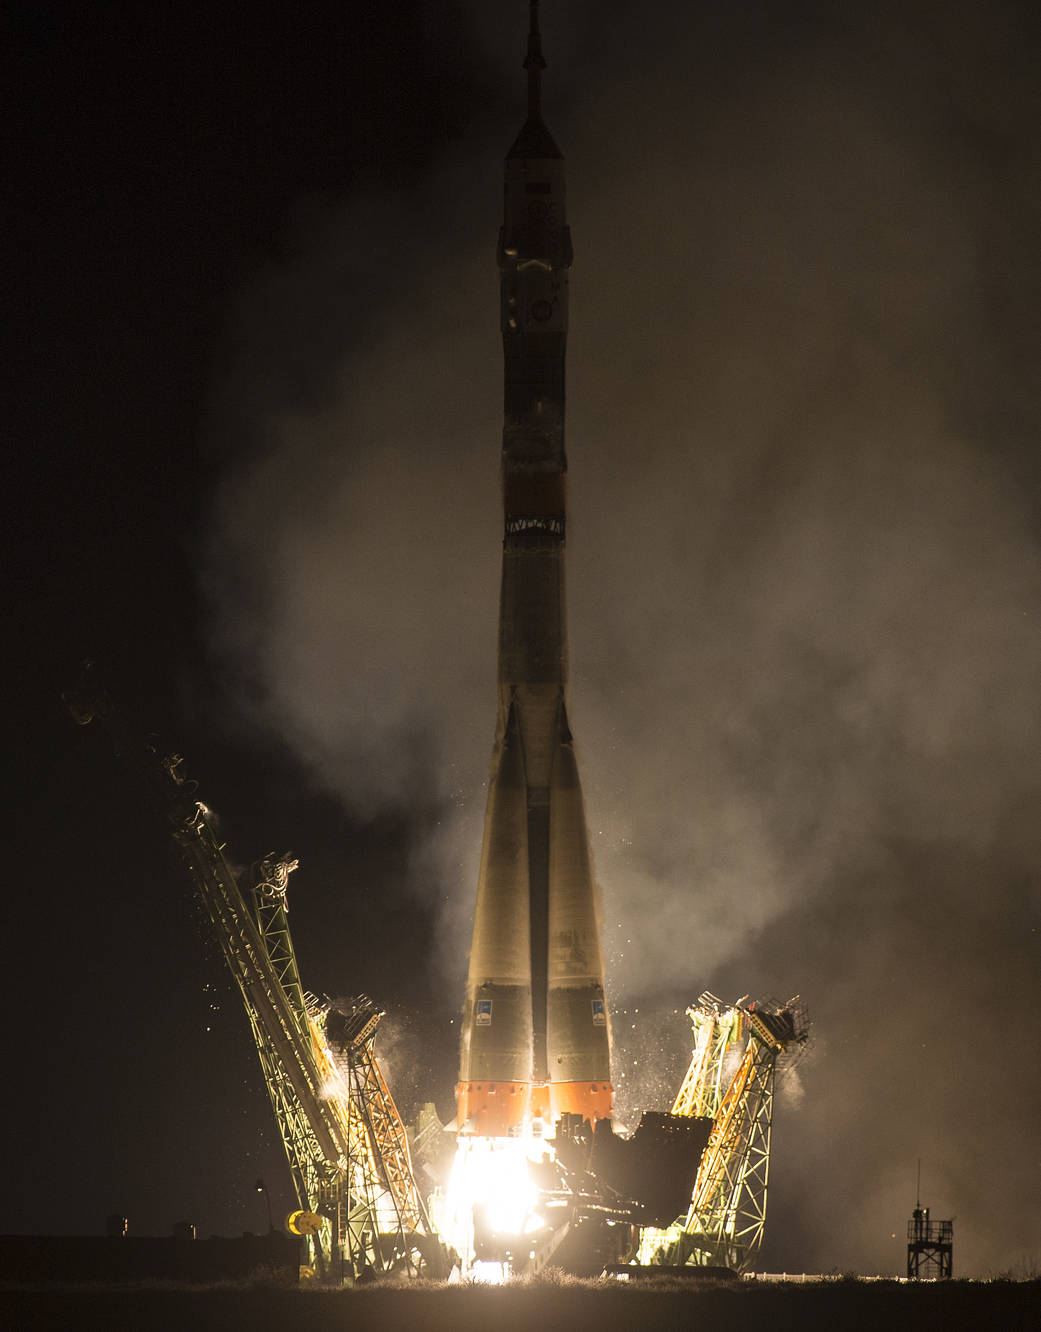 Soyuz TMA-20M rocket launches from the Baikonur Cosmodrome in Kazakhstan on Saturday, March 19, 2016